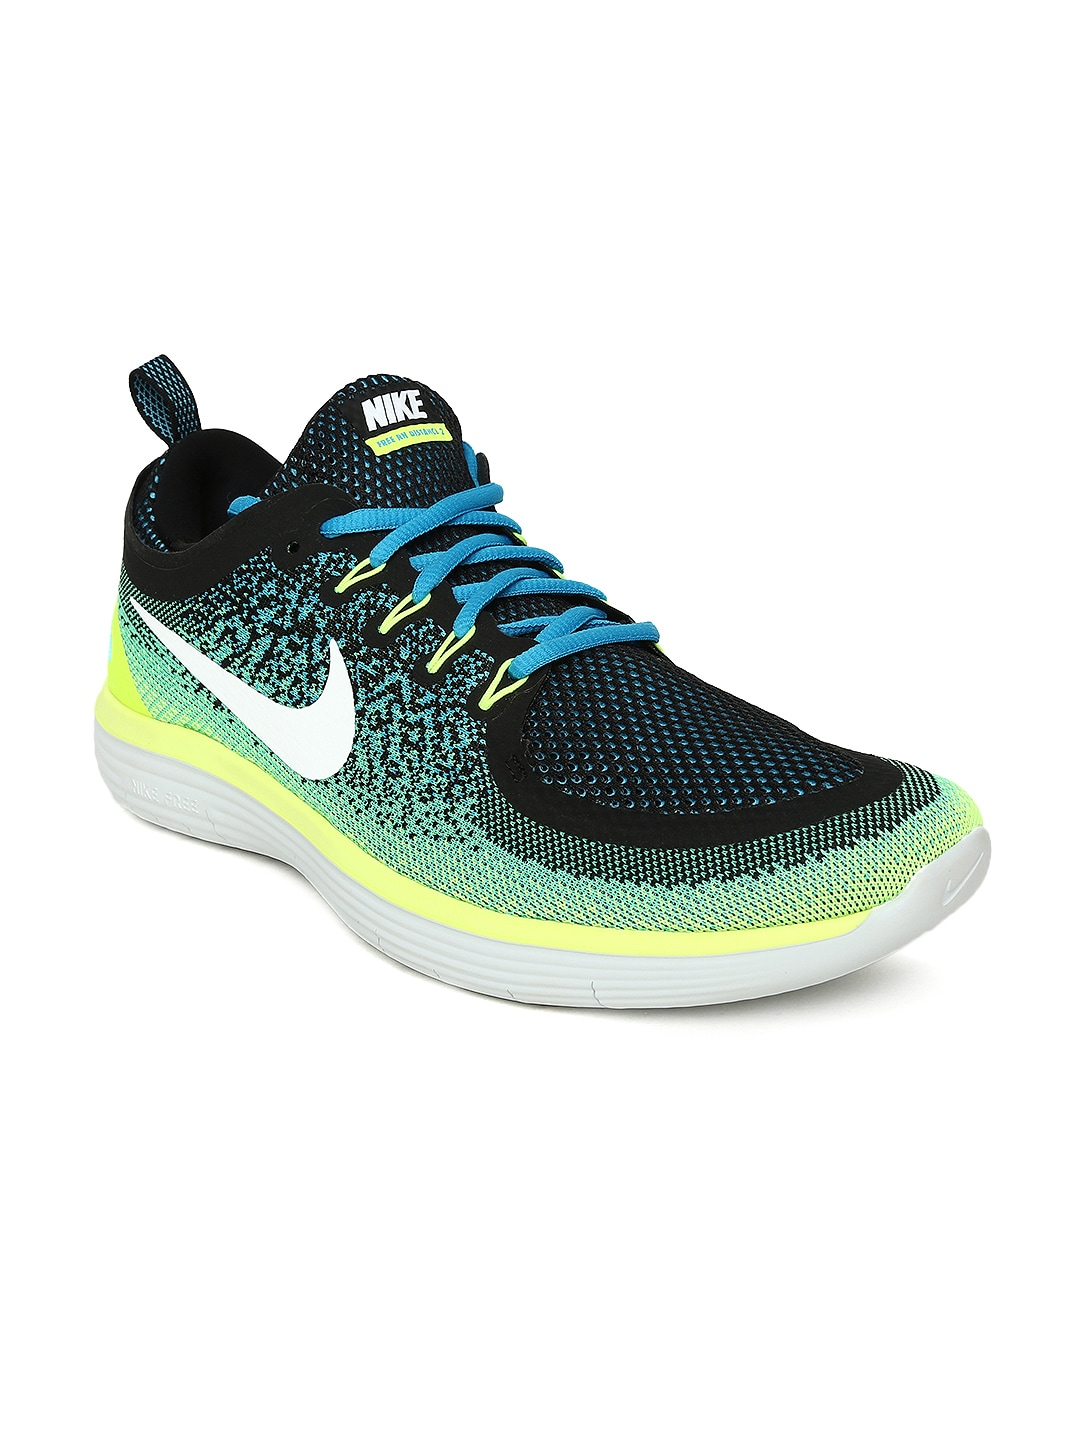 7c0f6accaa18f Nike Free Rn Distance 2 Black Running Shoes for Men online in India ...